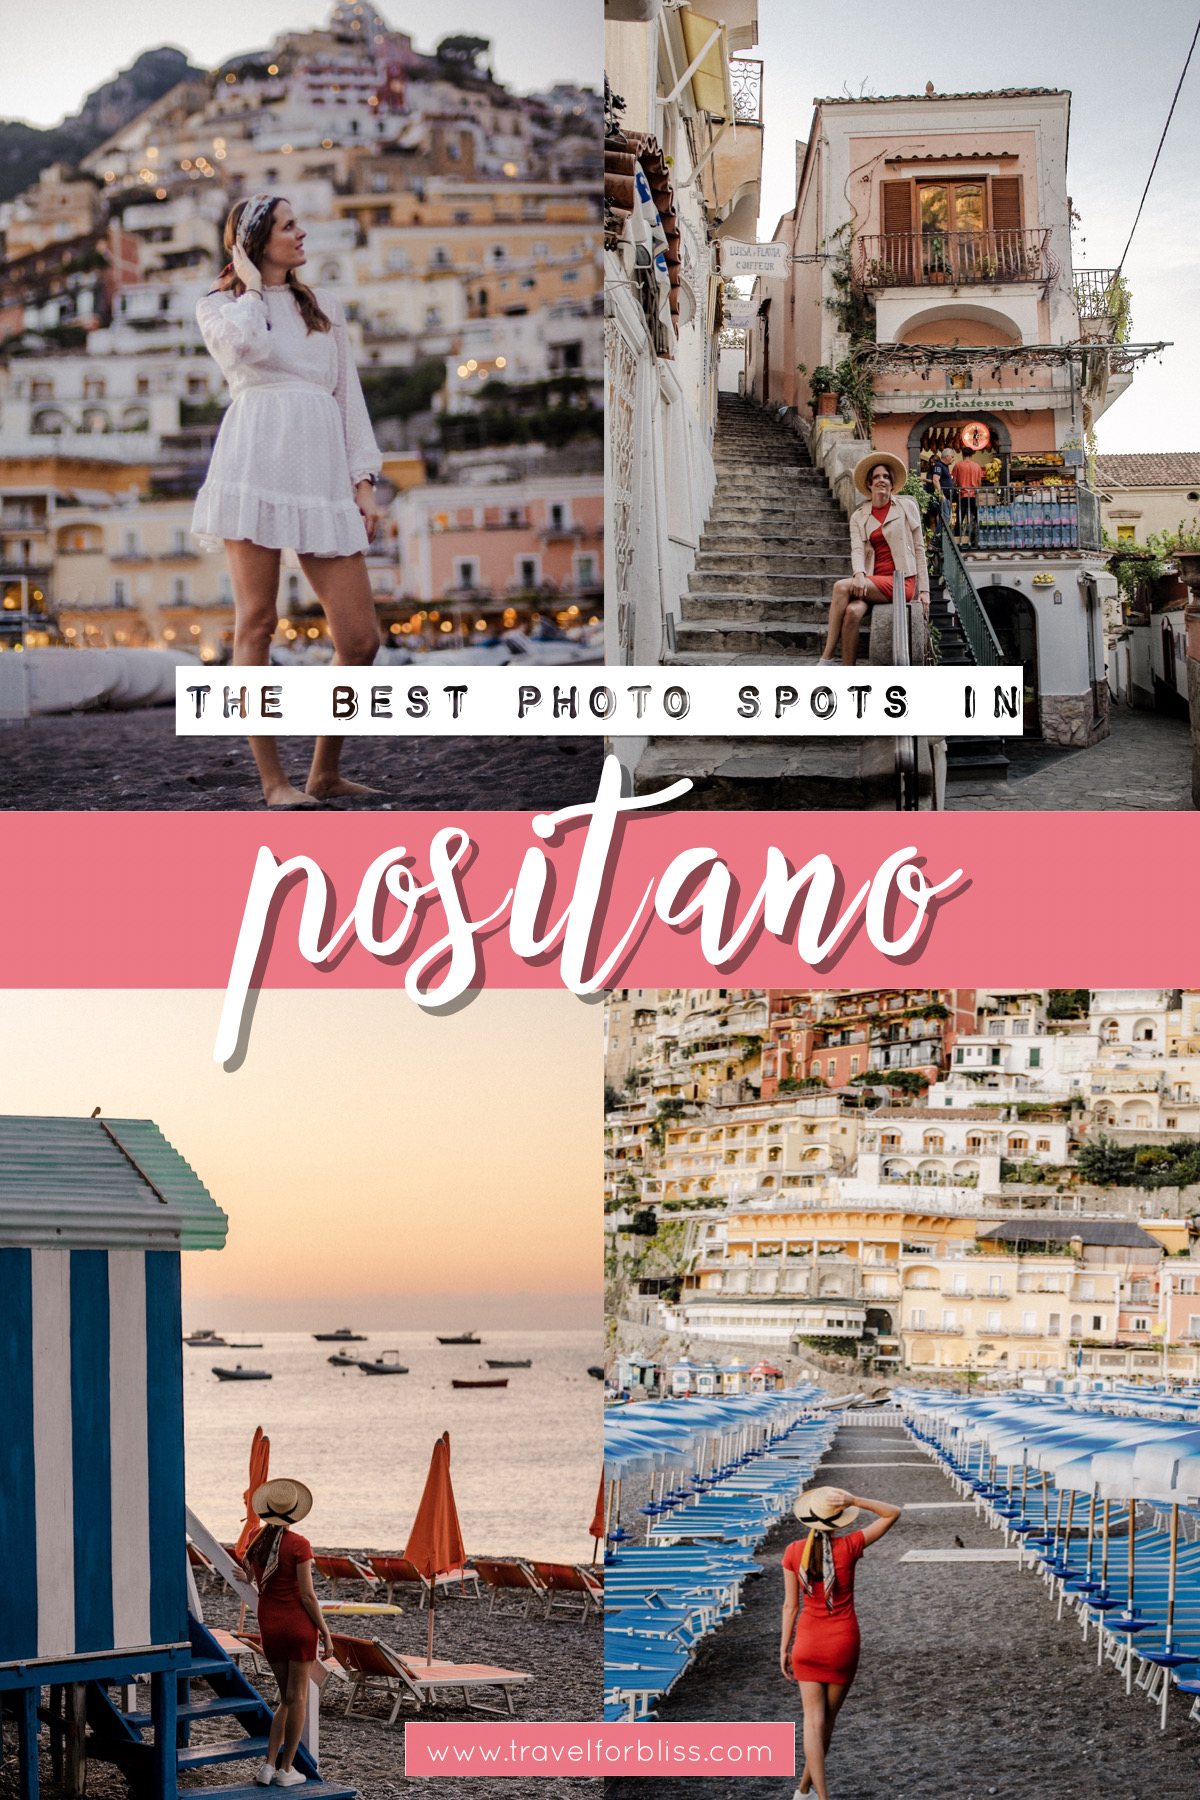 Discover the best photo spots in Positano. This travel guide is all about the most instagrammable spots in Positano